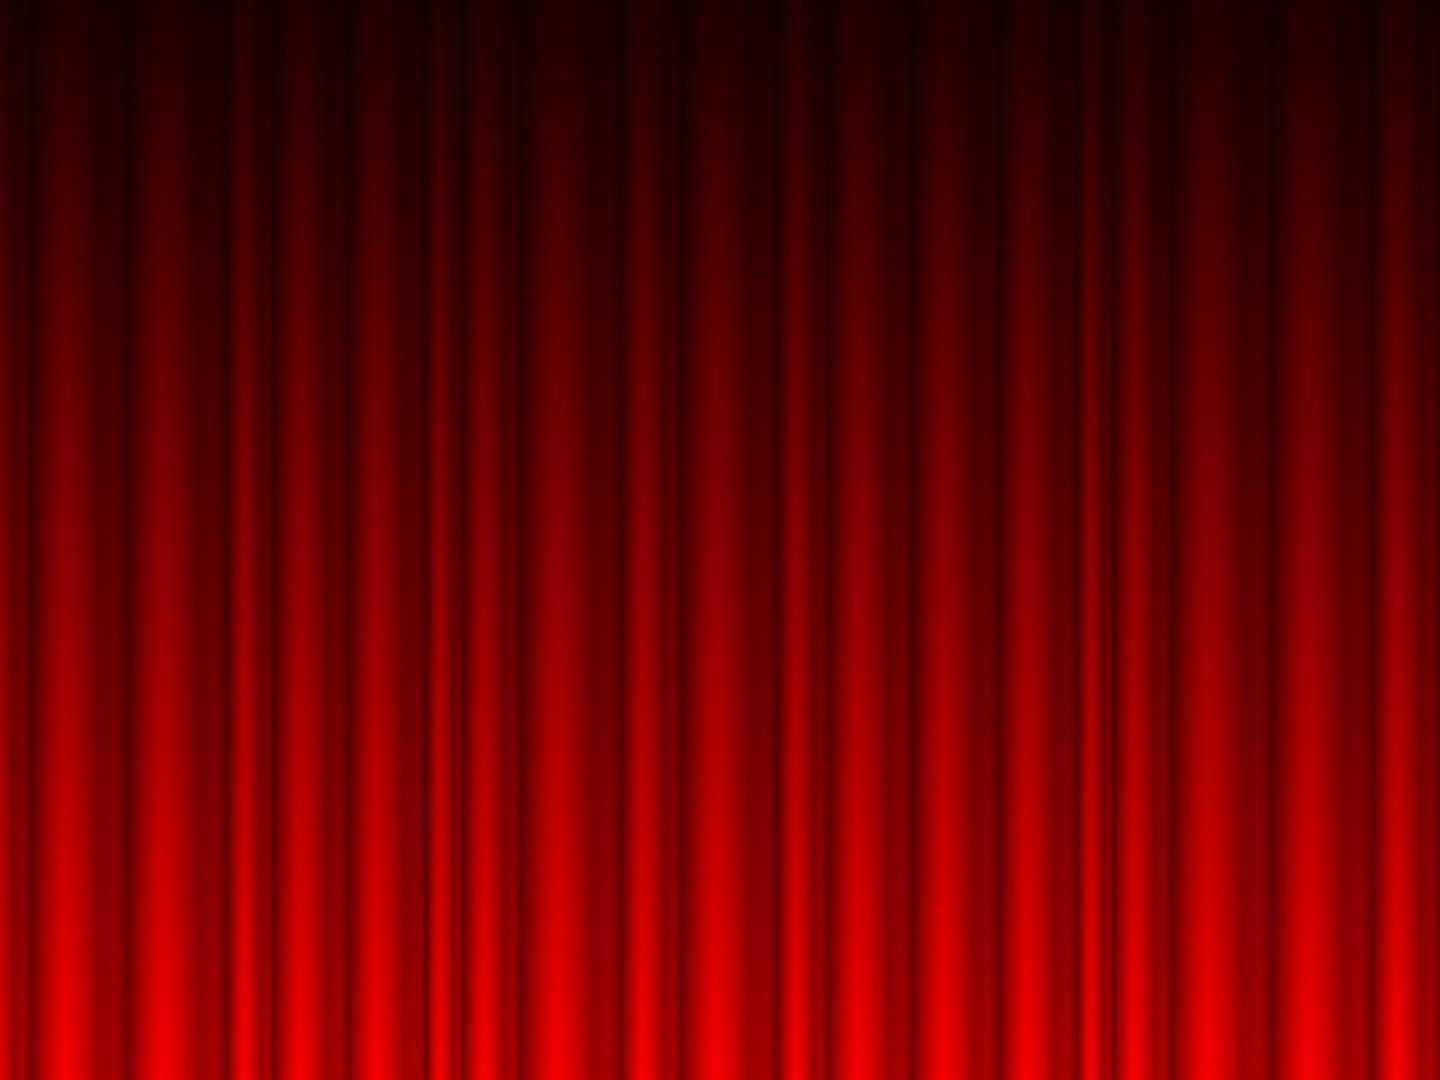 1440x1080 Red Curtain Background Powerpoint Trendy Red Curtains Vector